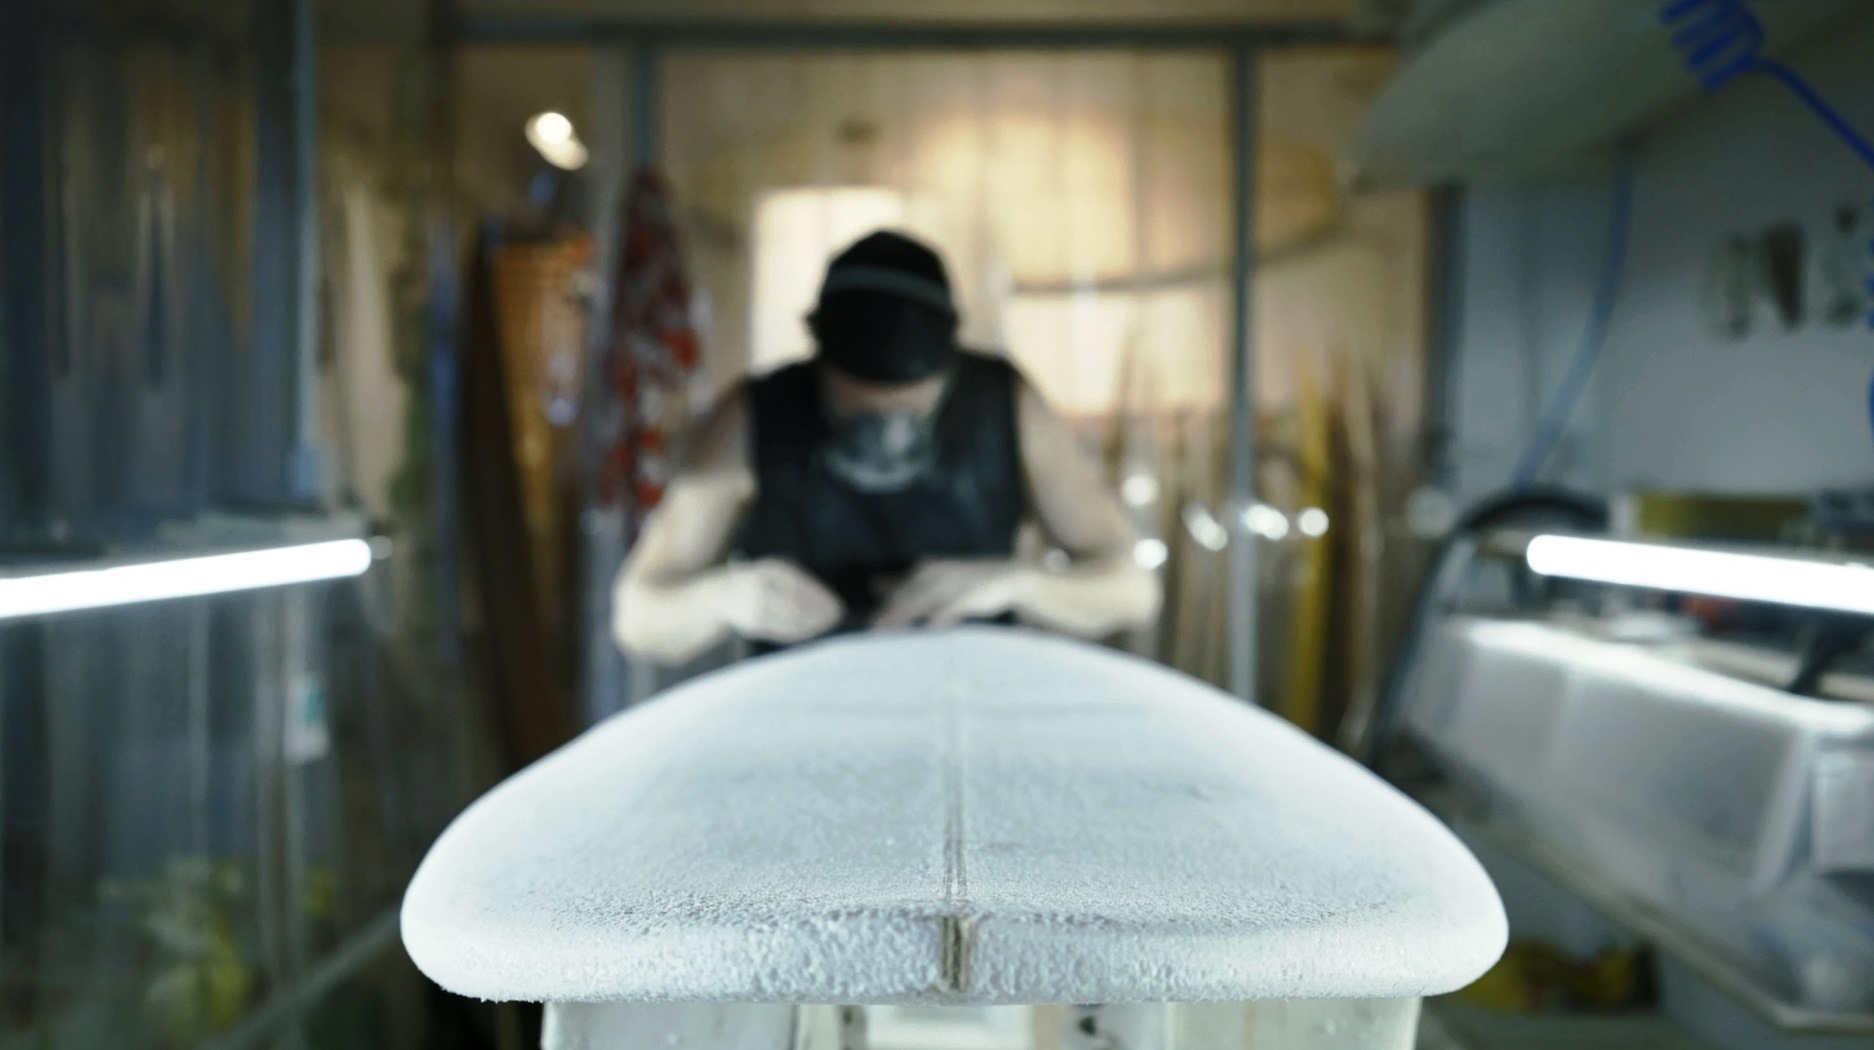 Makara surfboard shaper Chris Tilbe